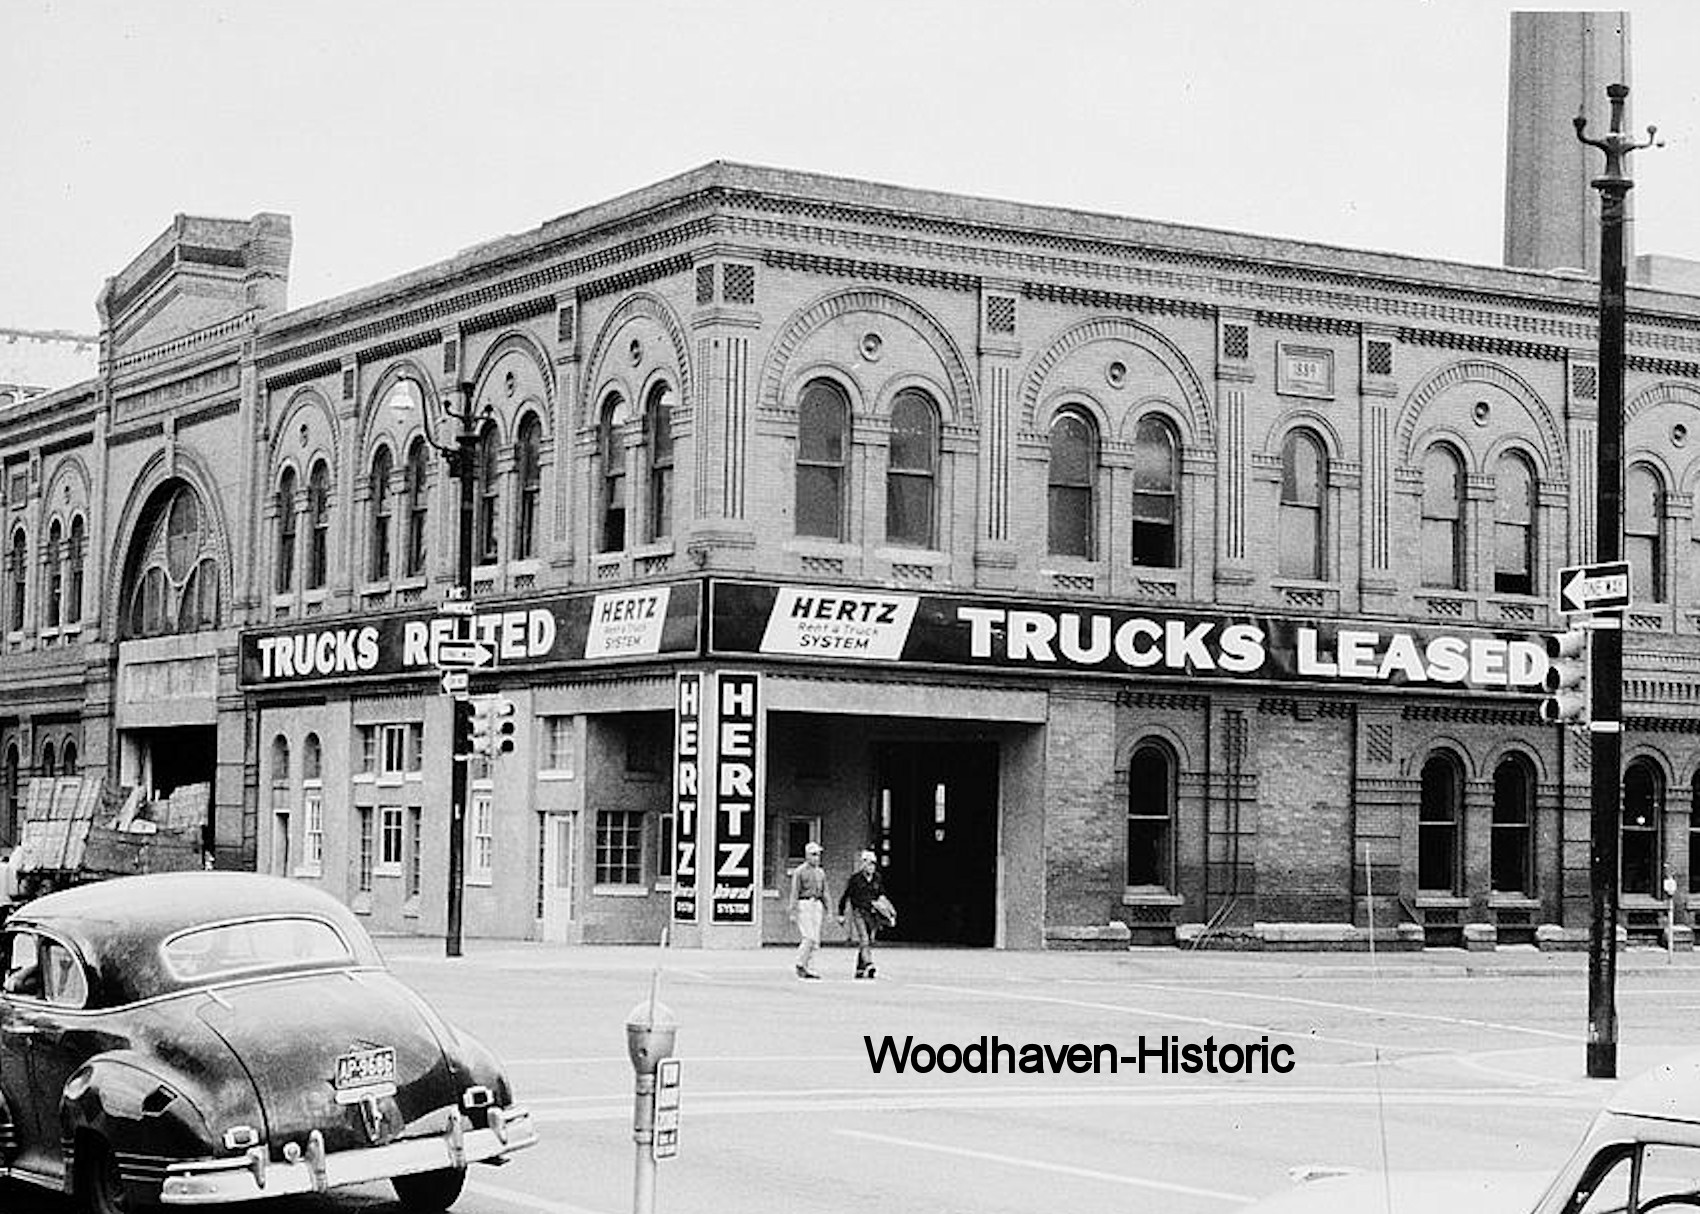 Denver City Railway Company Building in 1959 (woodhavenhistoric.com)